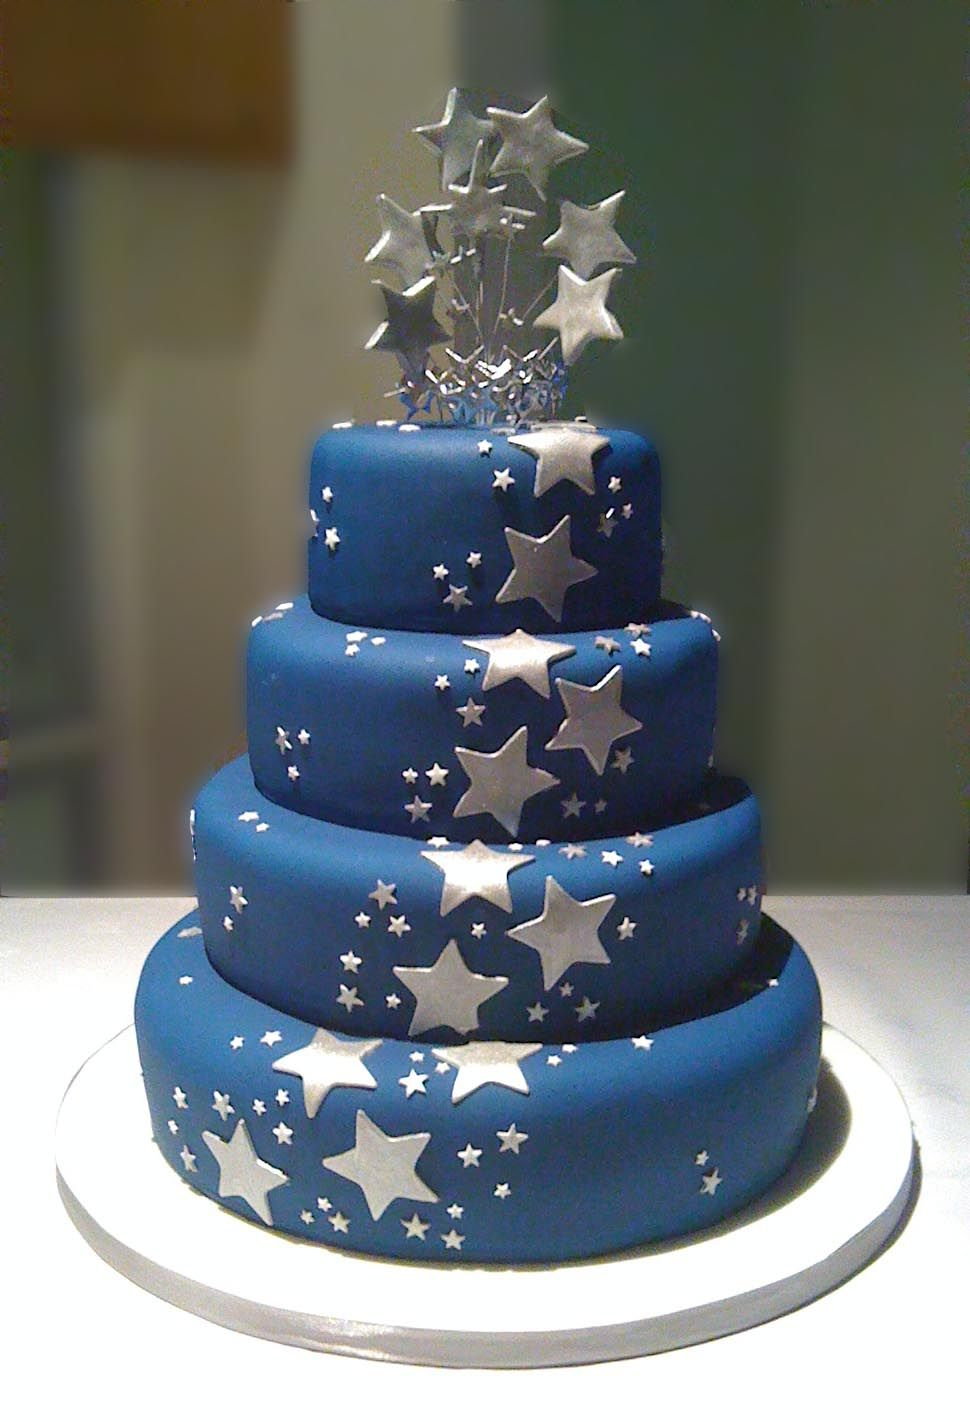 blue wedding cakes designs blue wedding cake ideas silver pink cakes and 12016